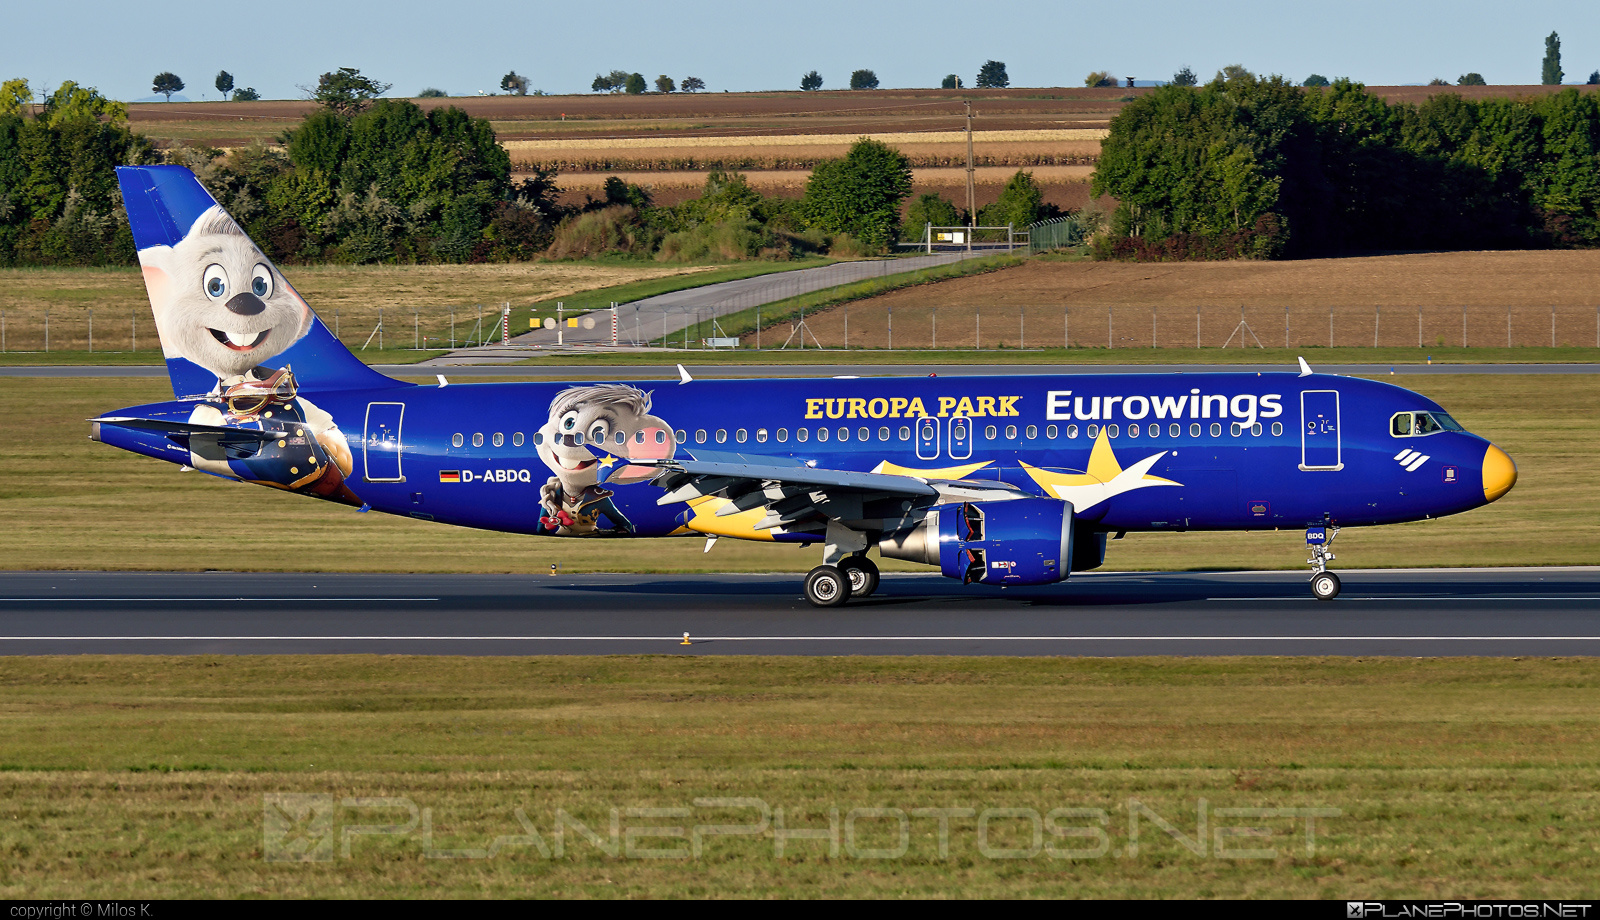 Airbus A320-214 - D-ABDQ operated by Eurowings #a320 #a320family #airbus #airbus320 #eurowings